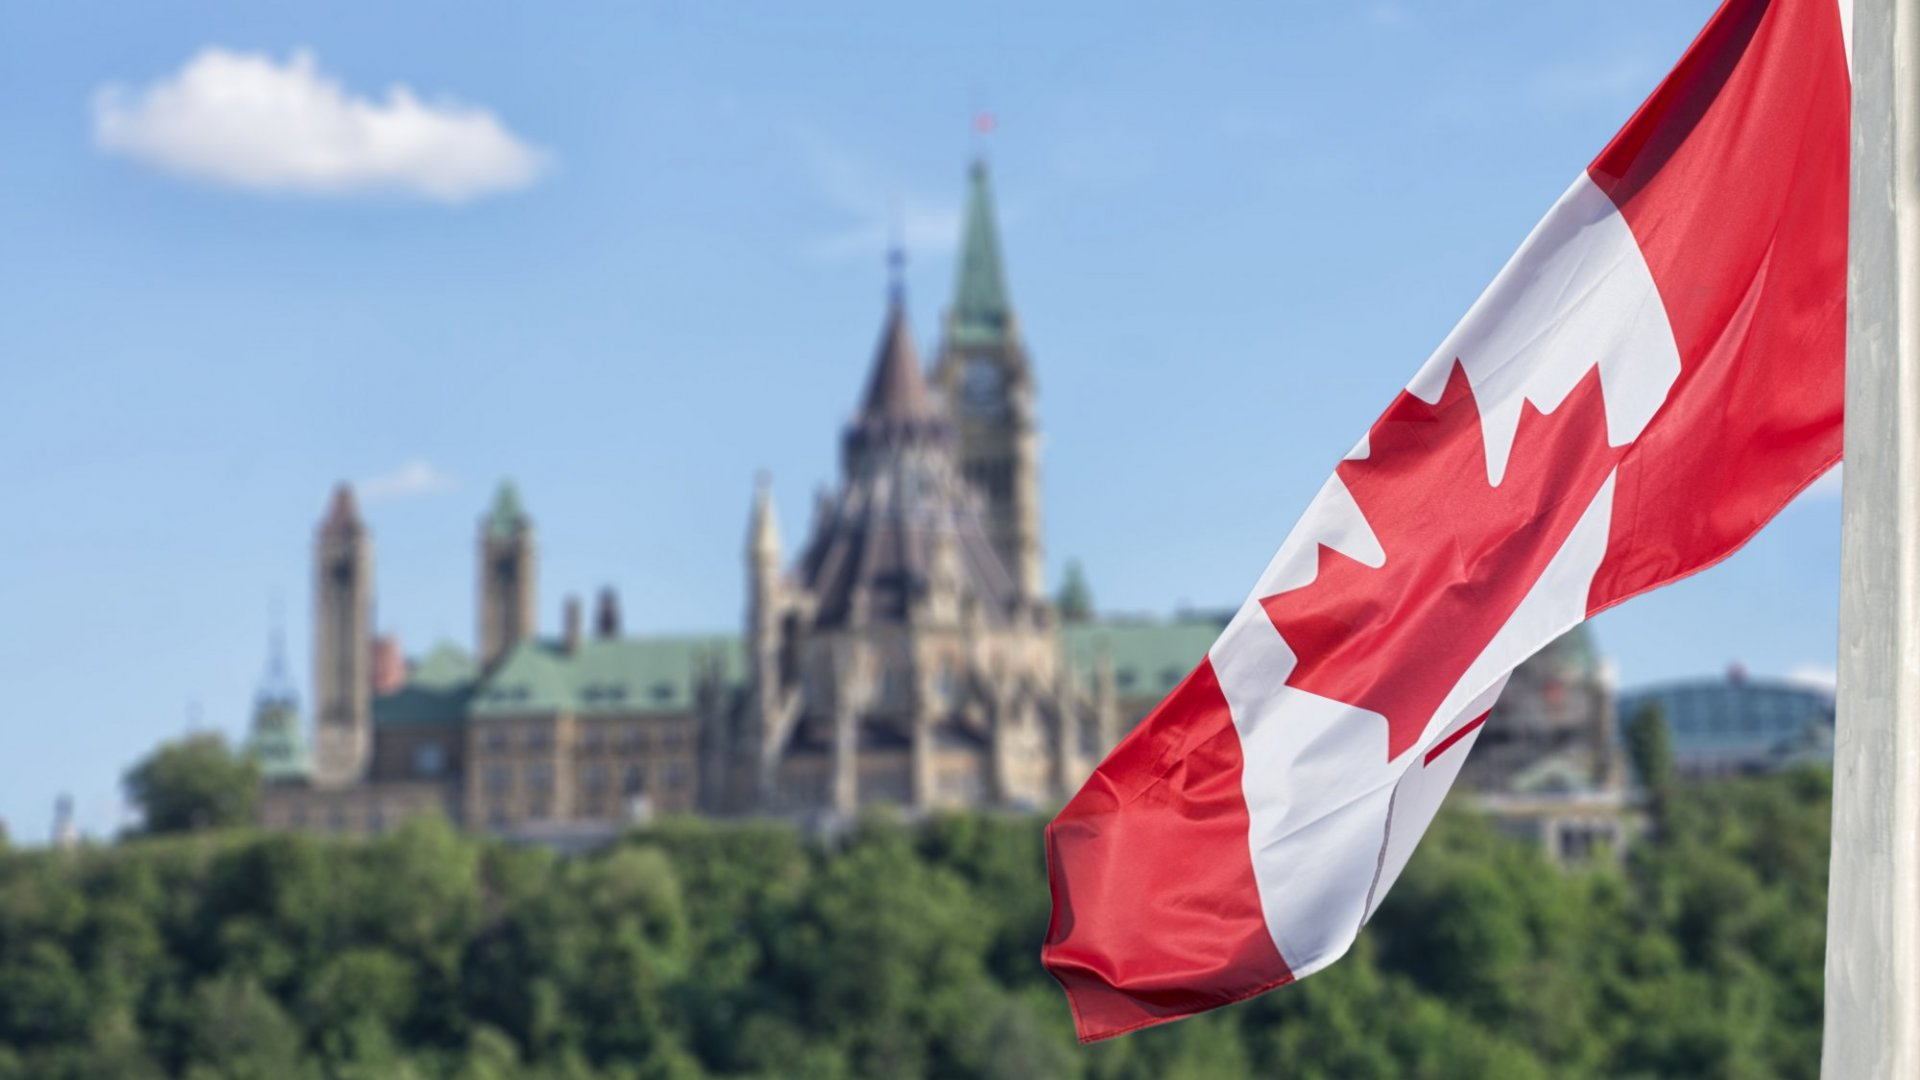 After the New Trade Deal, Here's Why You Should Consider Doing Business in Canada